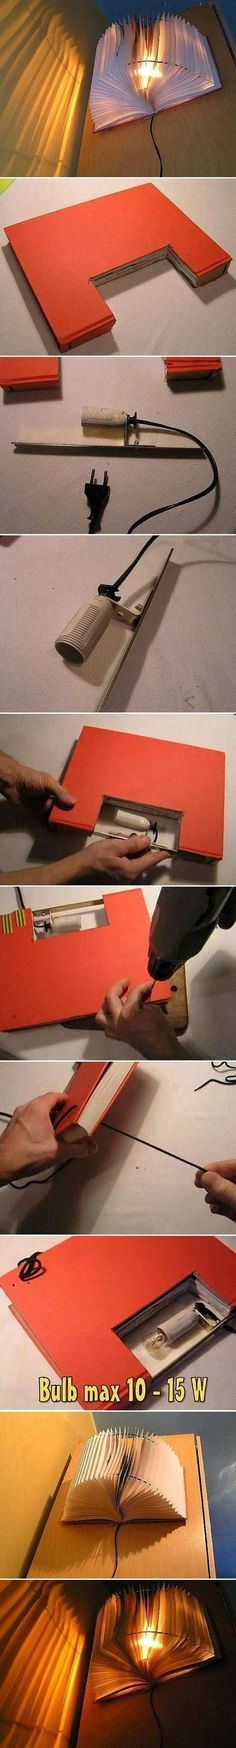 Use a thicker book, 300 to 400 pages and string that is closer to the color of the book pages.